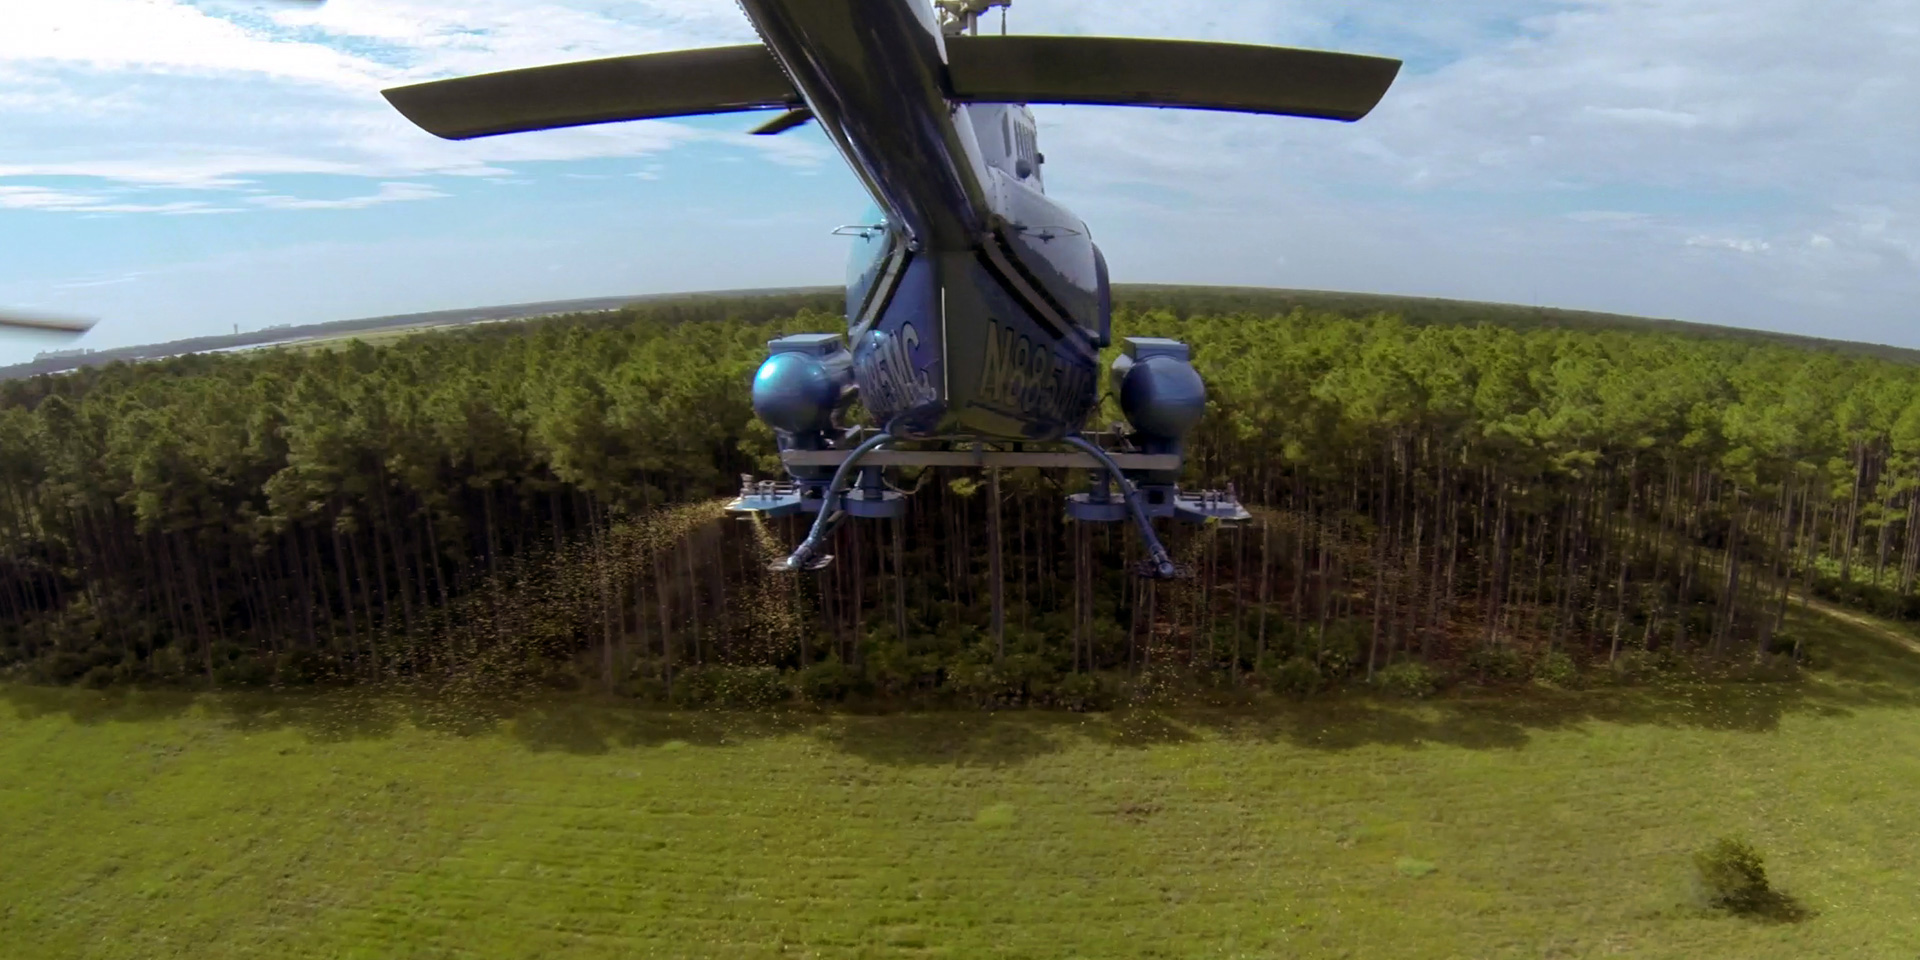 Larvicide Treatment form helicopter's perspective